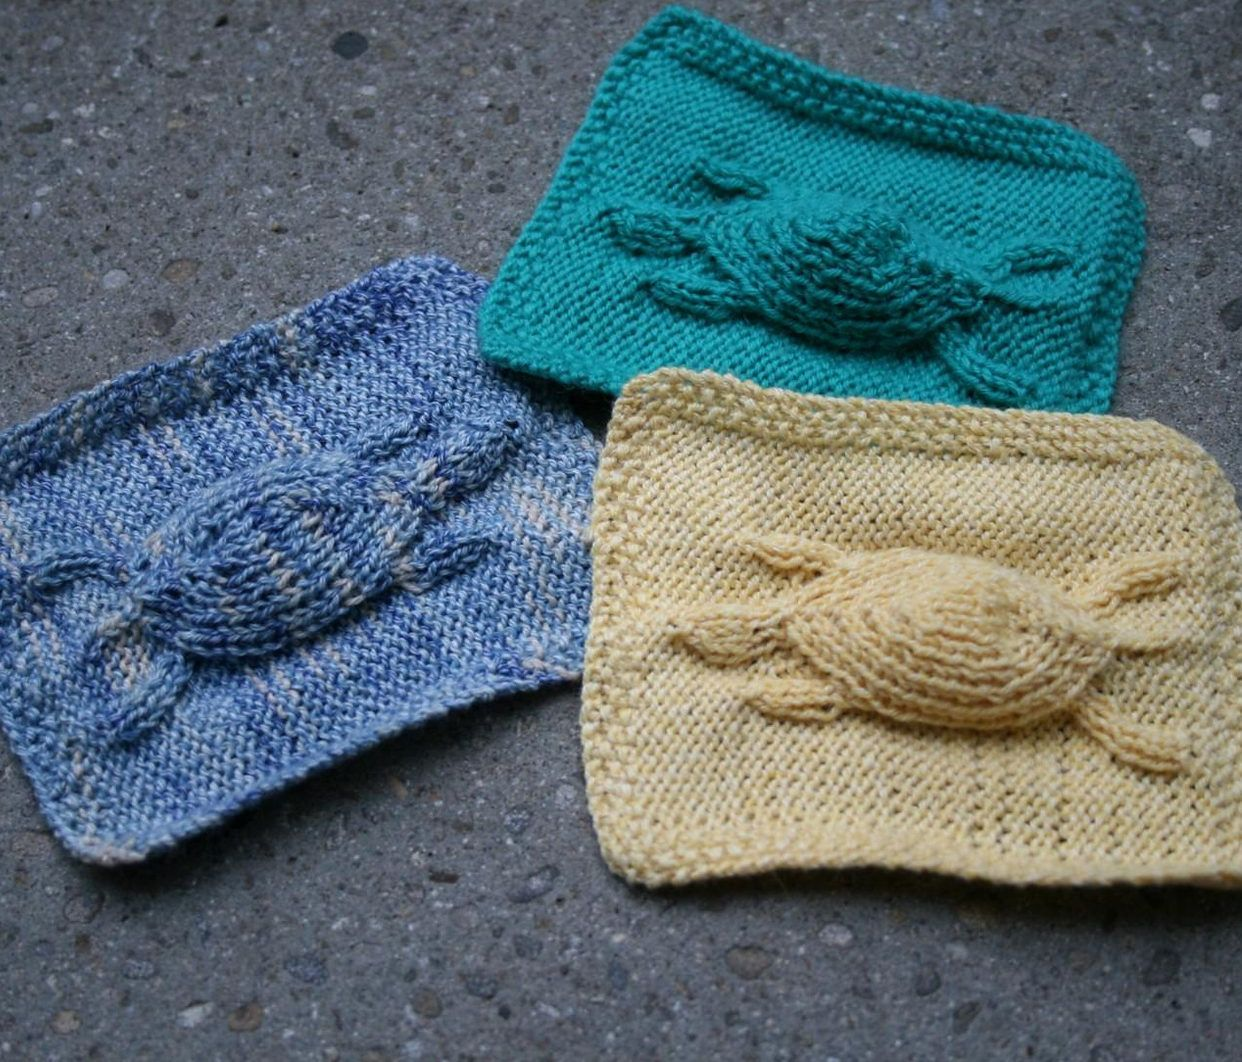 Sea Creature Knitting Patterns | Clever design, Potholders and ...